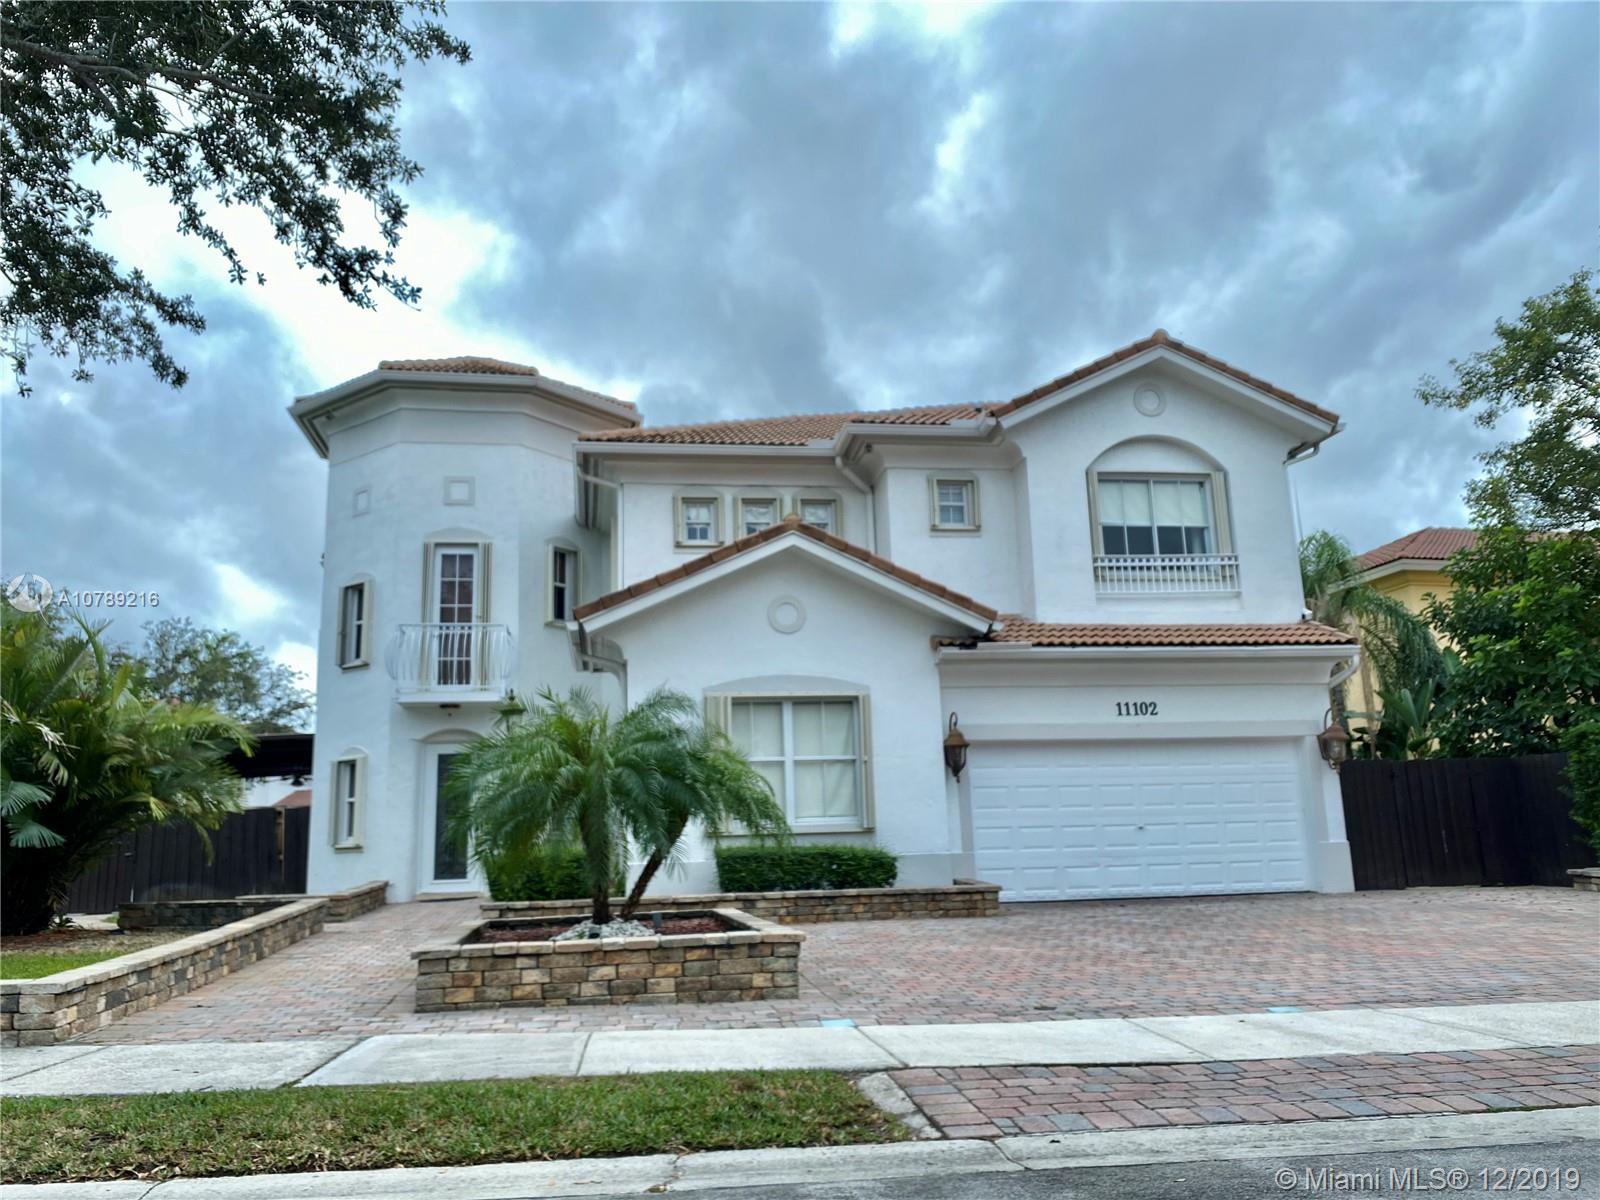 11102 NW 71st Ter, Doral FL 33178